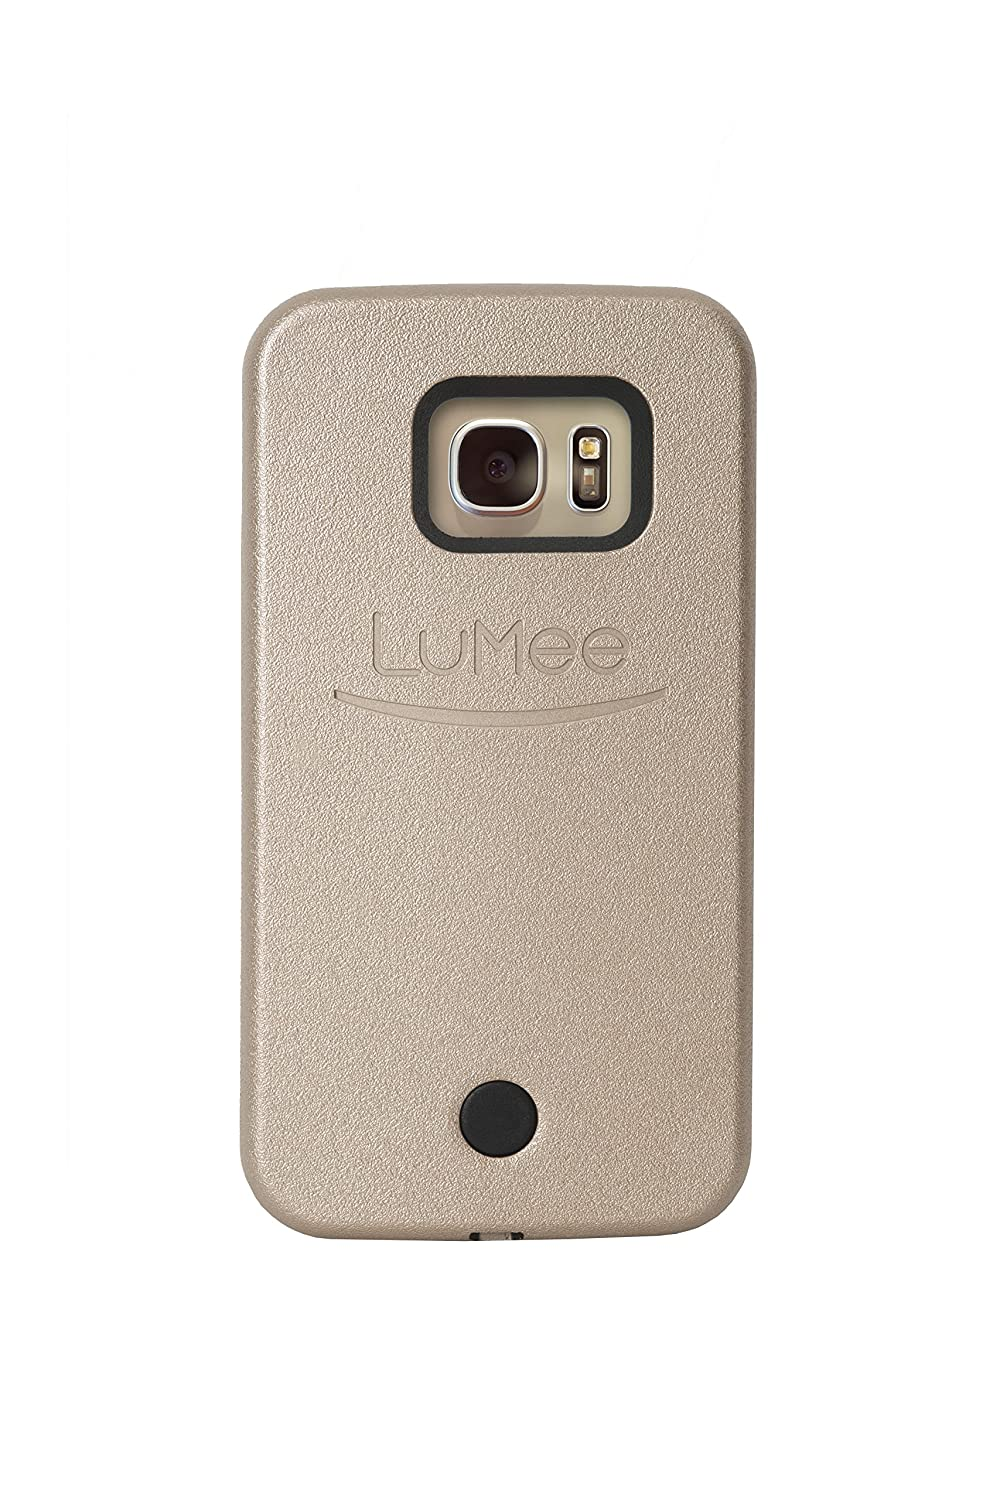 online store 0c7f7 ed80c LuMee, Illuminated Cell Phone Case for Samsung Galaxy S7 - Gold